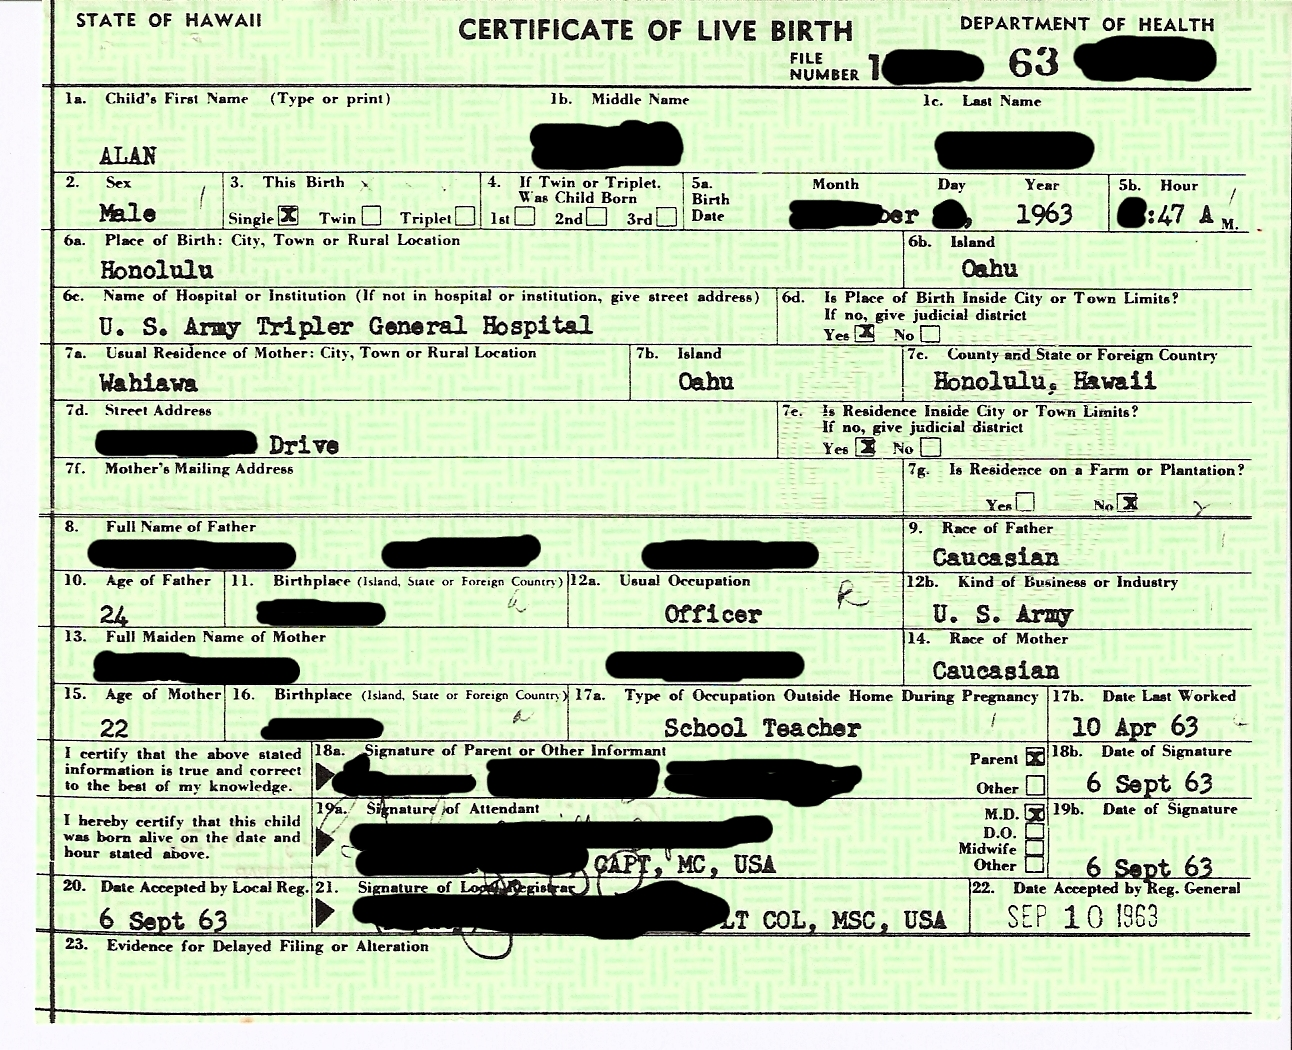 How Is Race Determined On Birth Certificate